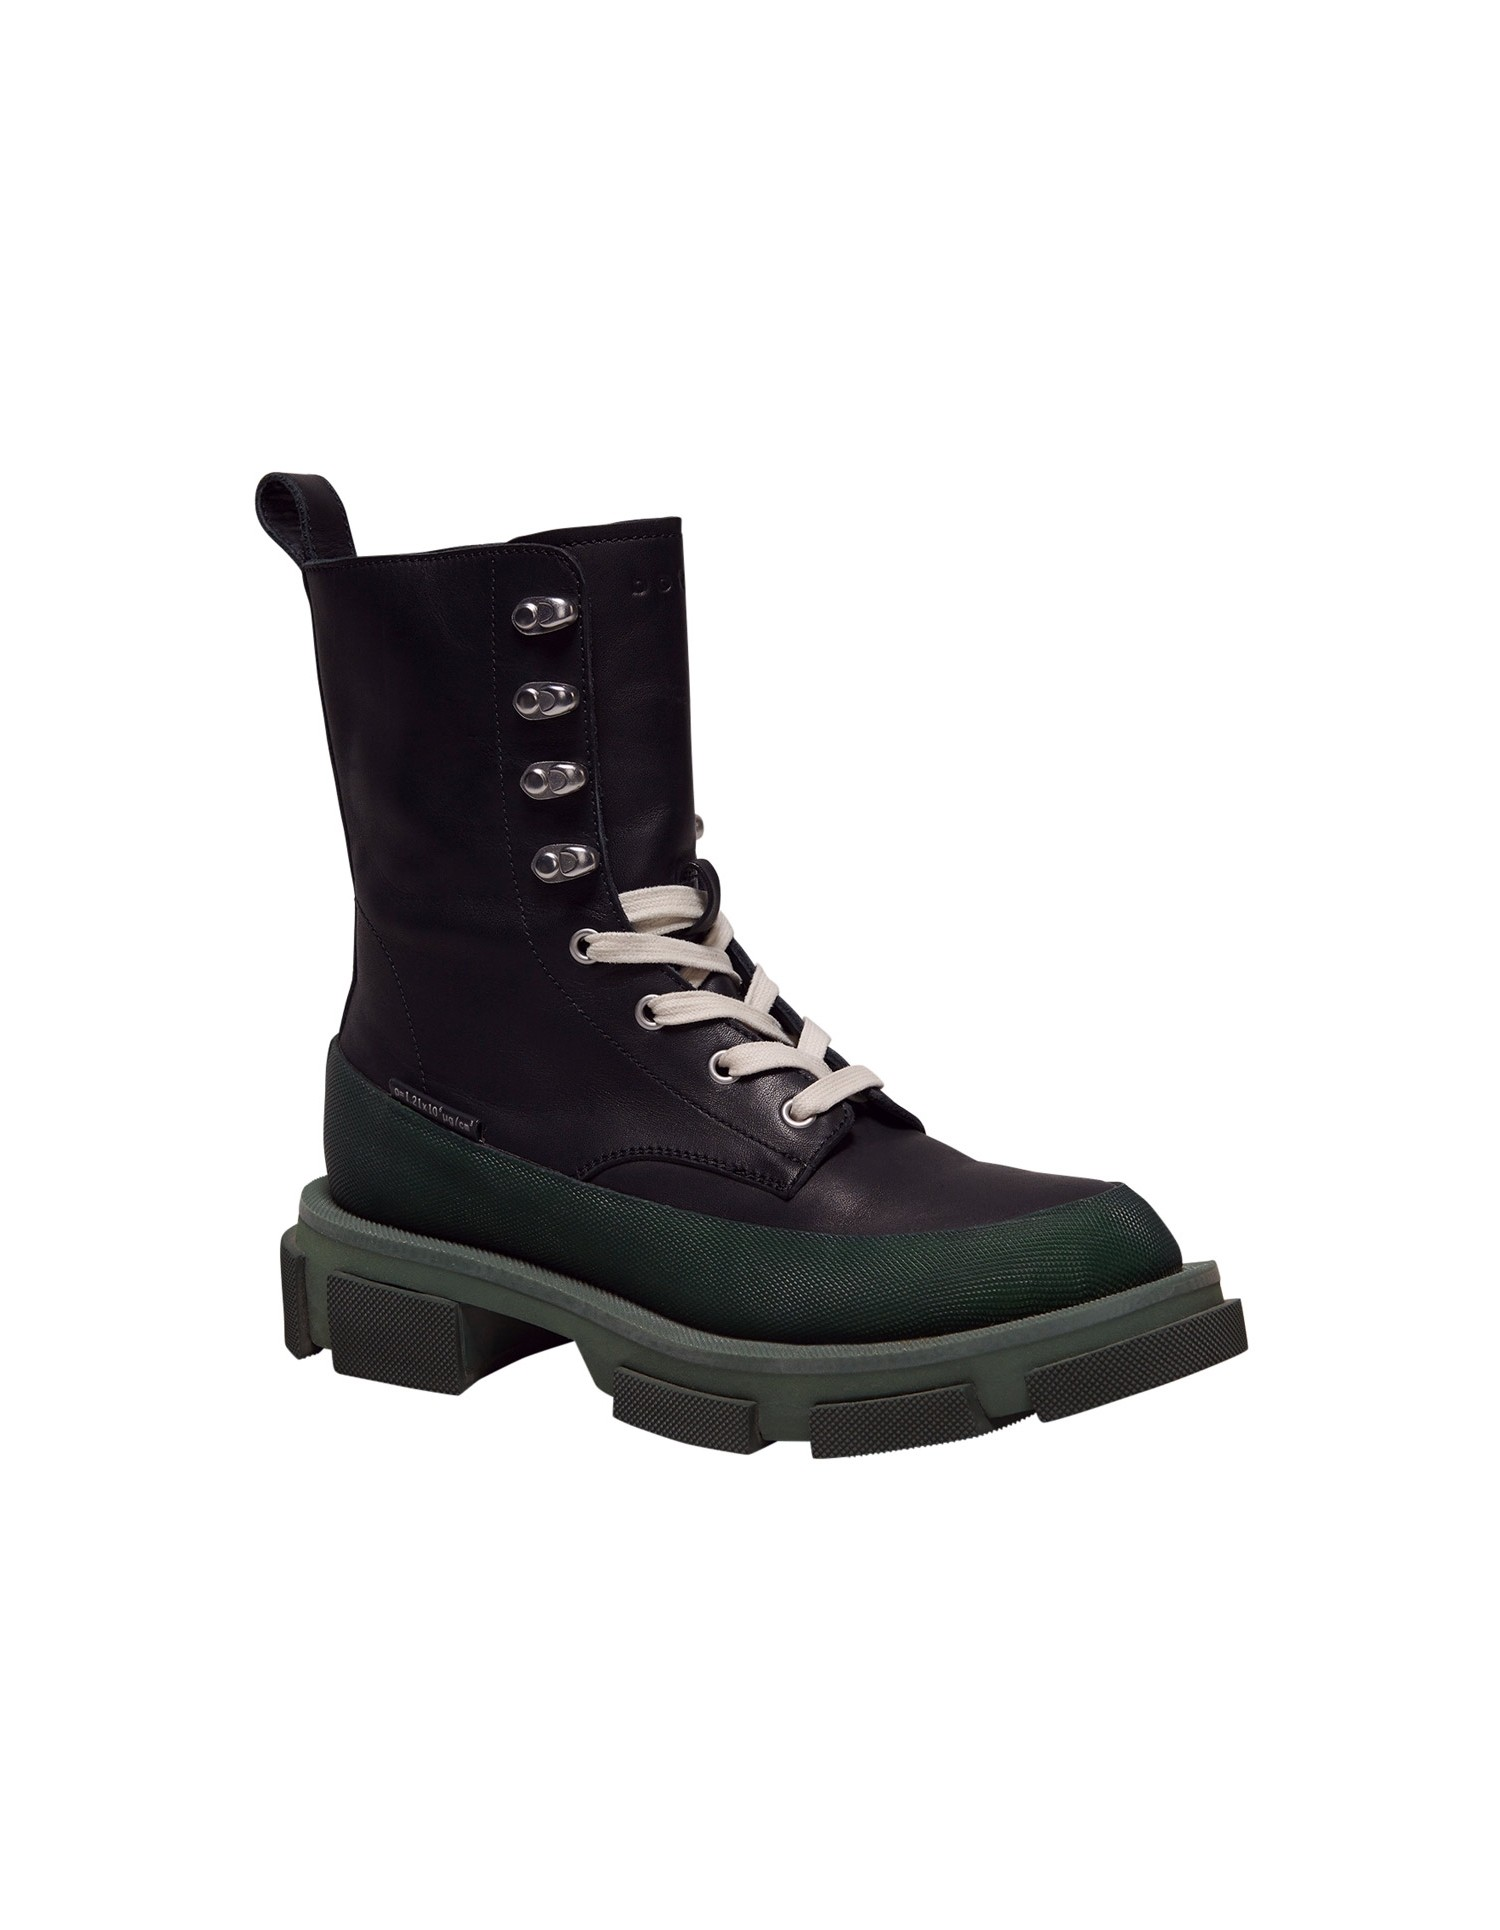 Both x MONSE Gao High Boots in Black and Olive Right Side Angle View